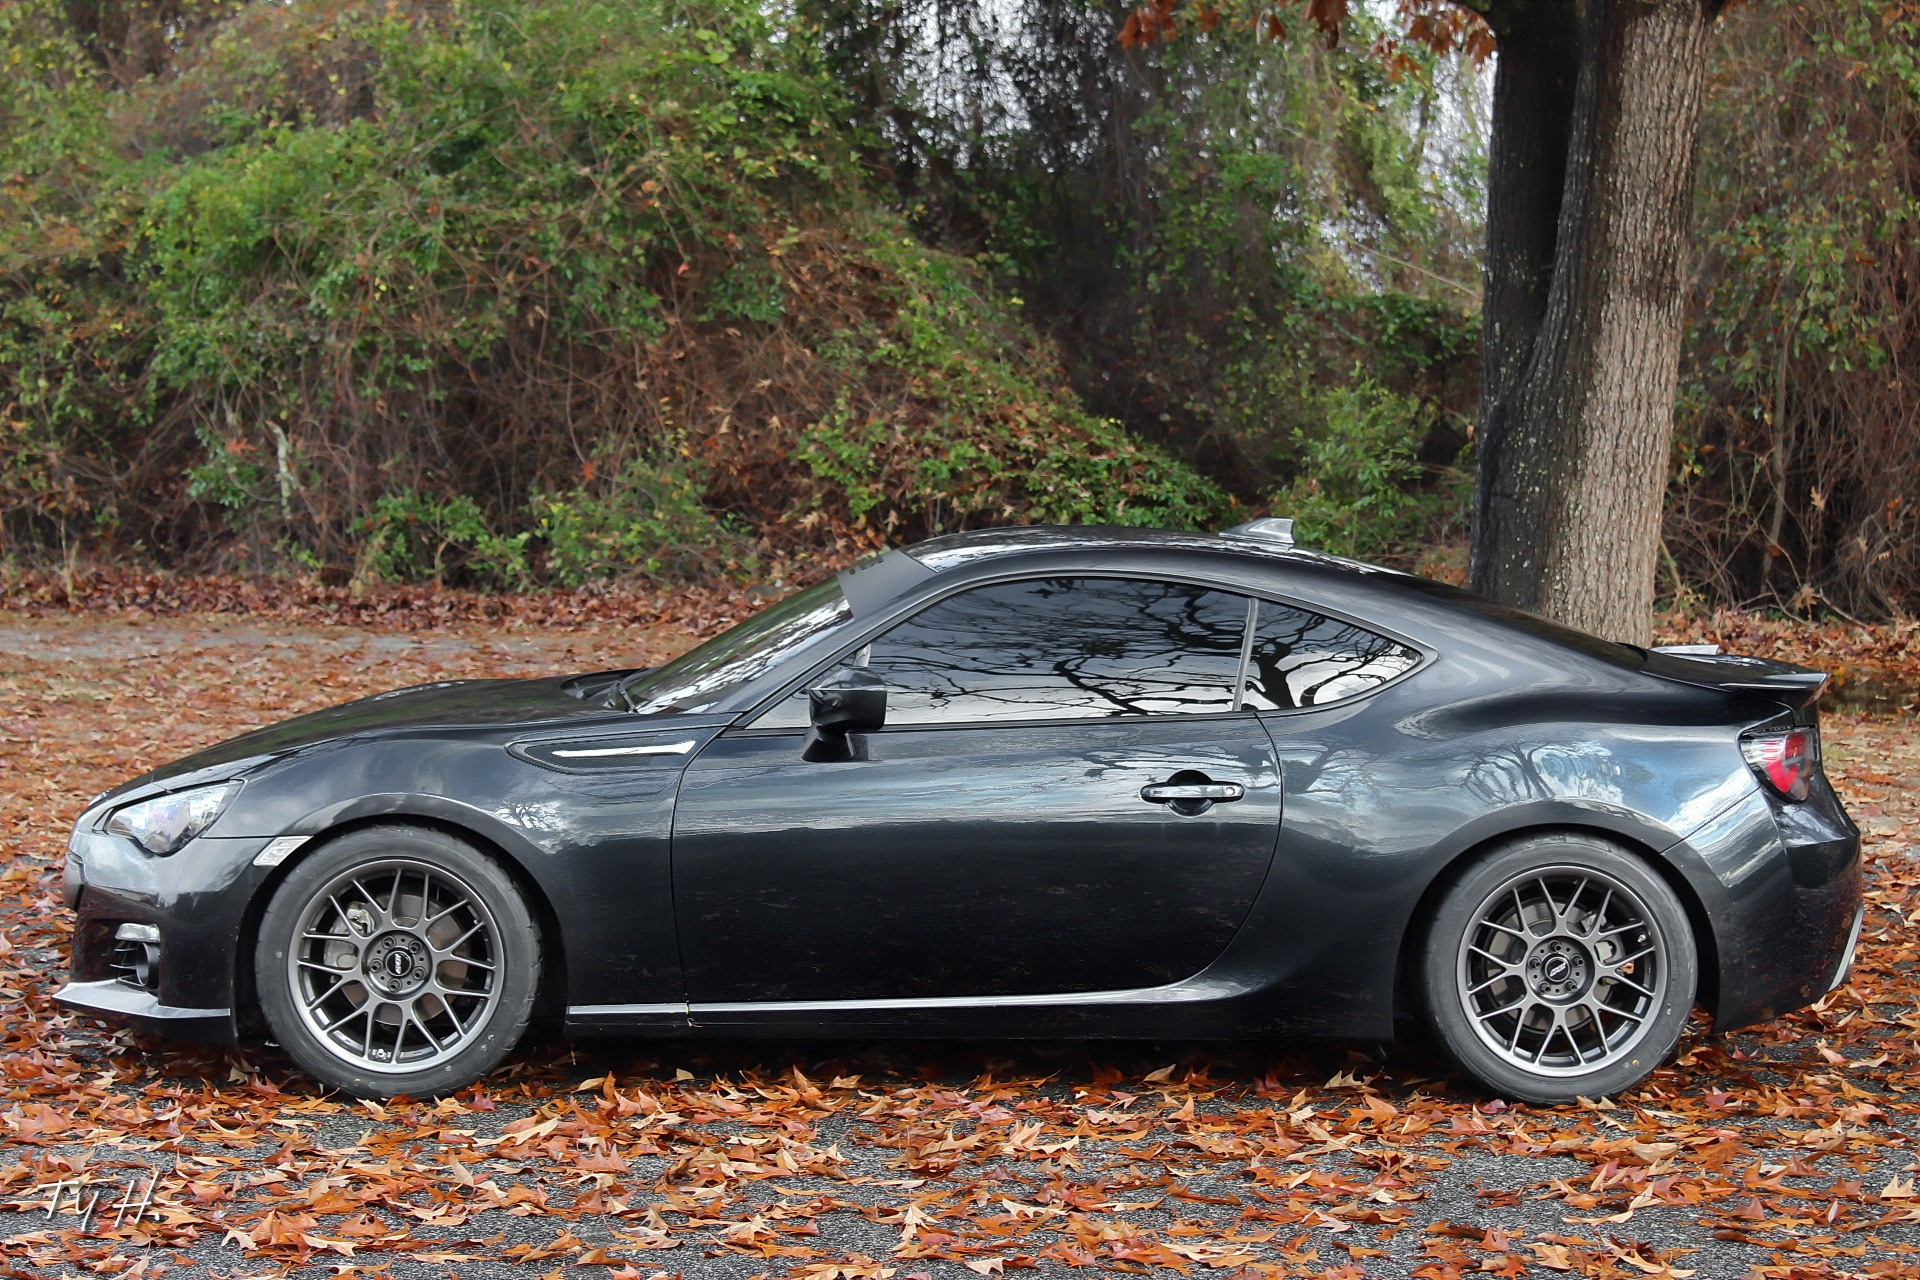 "Subaru BRZ<br />Anthracite 17x9"" ET42 ARC-8 wheels with 255/40-17 Firestone Firehawk tires"